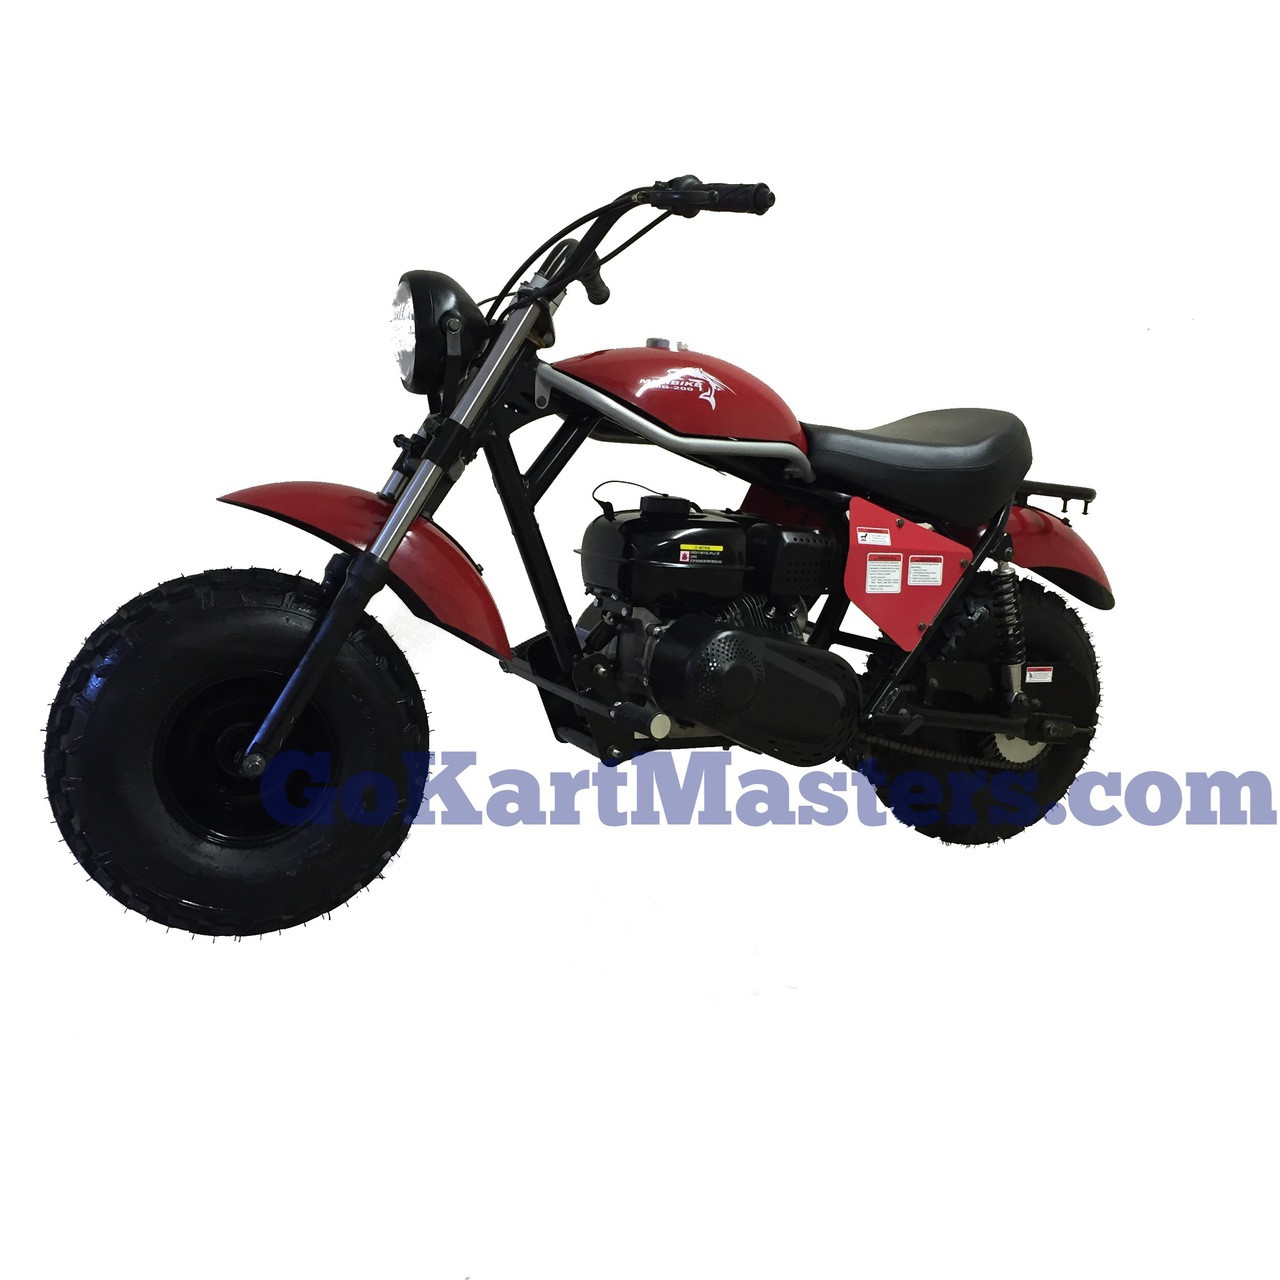 TrailMaster MB200-2 Mini Bike - Red